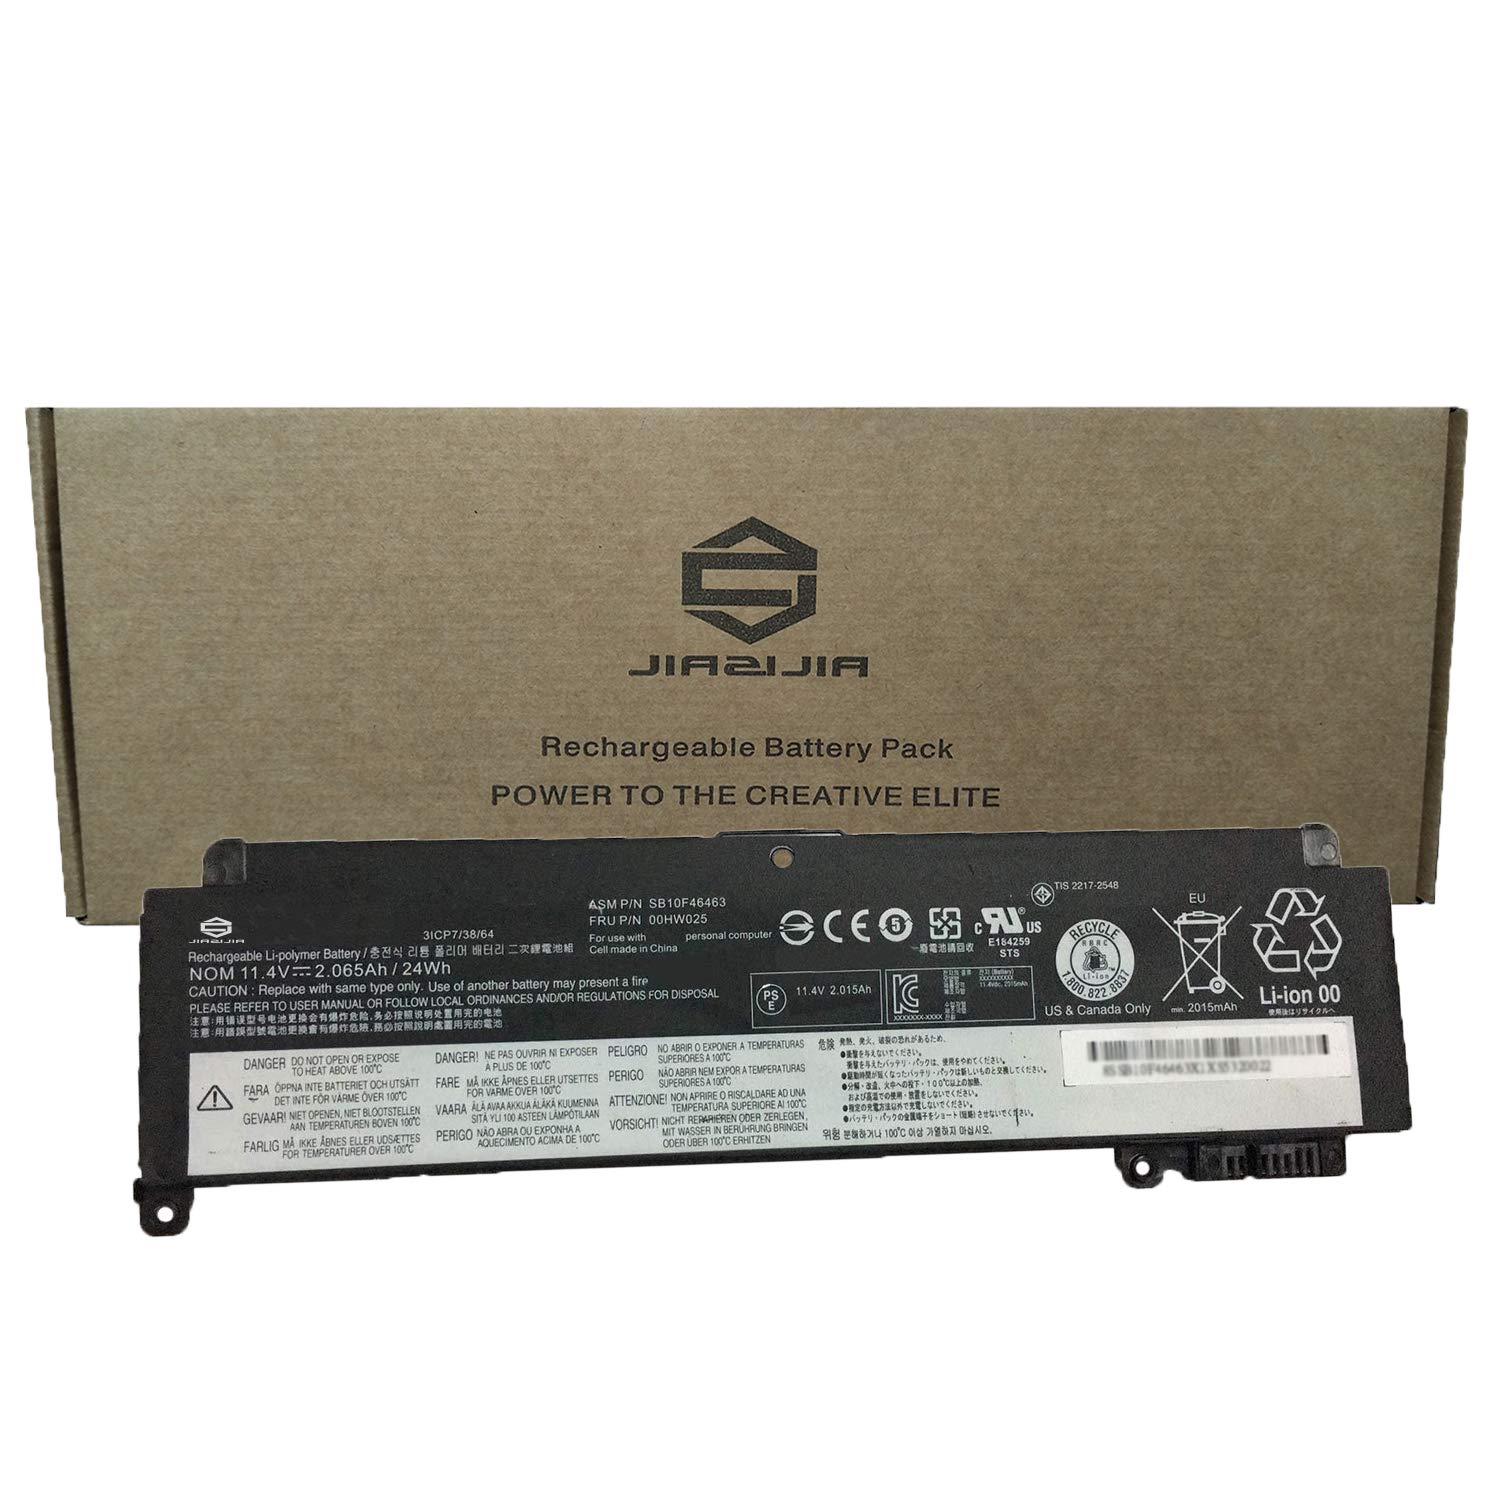 JIAZIJIA Compatible Laptop Battery with Lenovo 00HW025 [11.4V 24Wh 2065mAh] ThinkPad T460S T470S Series Notebook SB10F46463 Black - 1 Year Warranty by JIAZIJIA (Image #1)